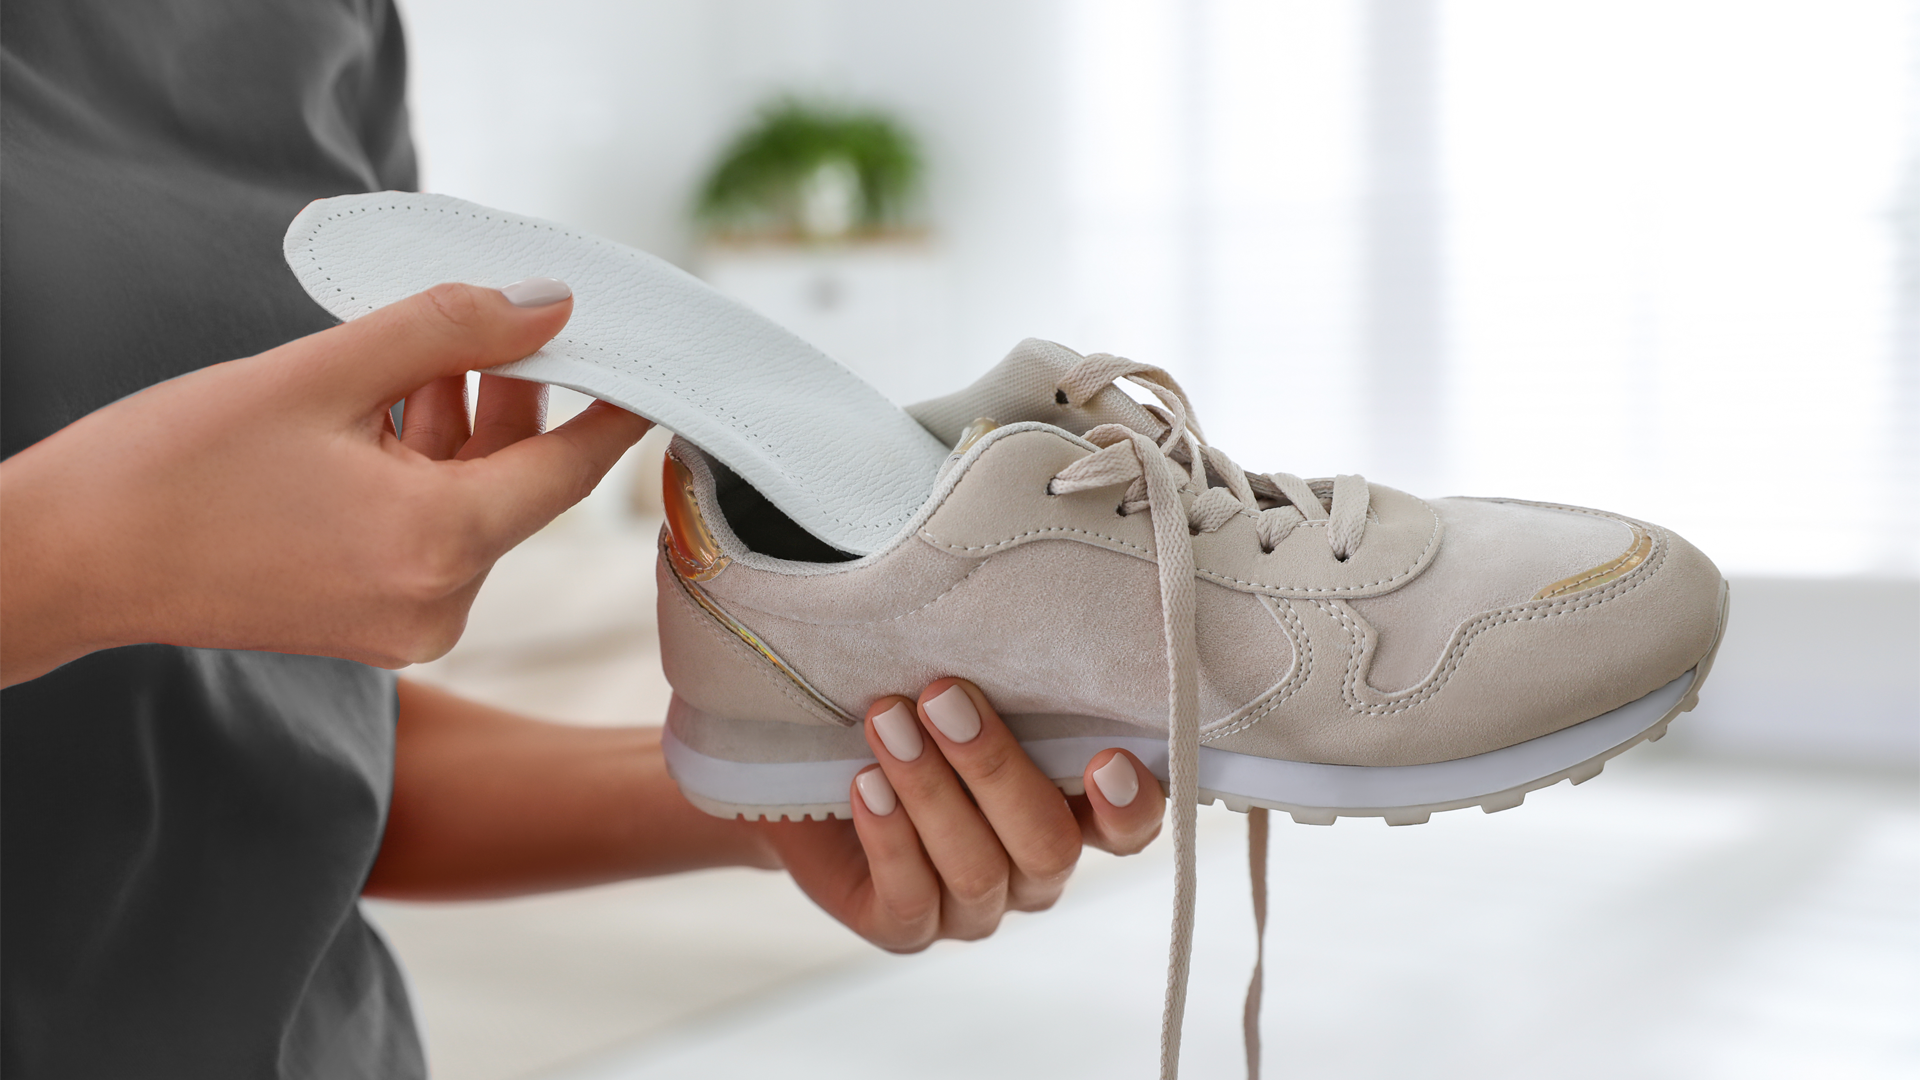 Orthotic Insole Fitting Service Provided at The Healthcare Hub